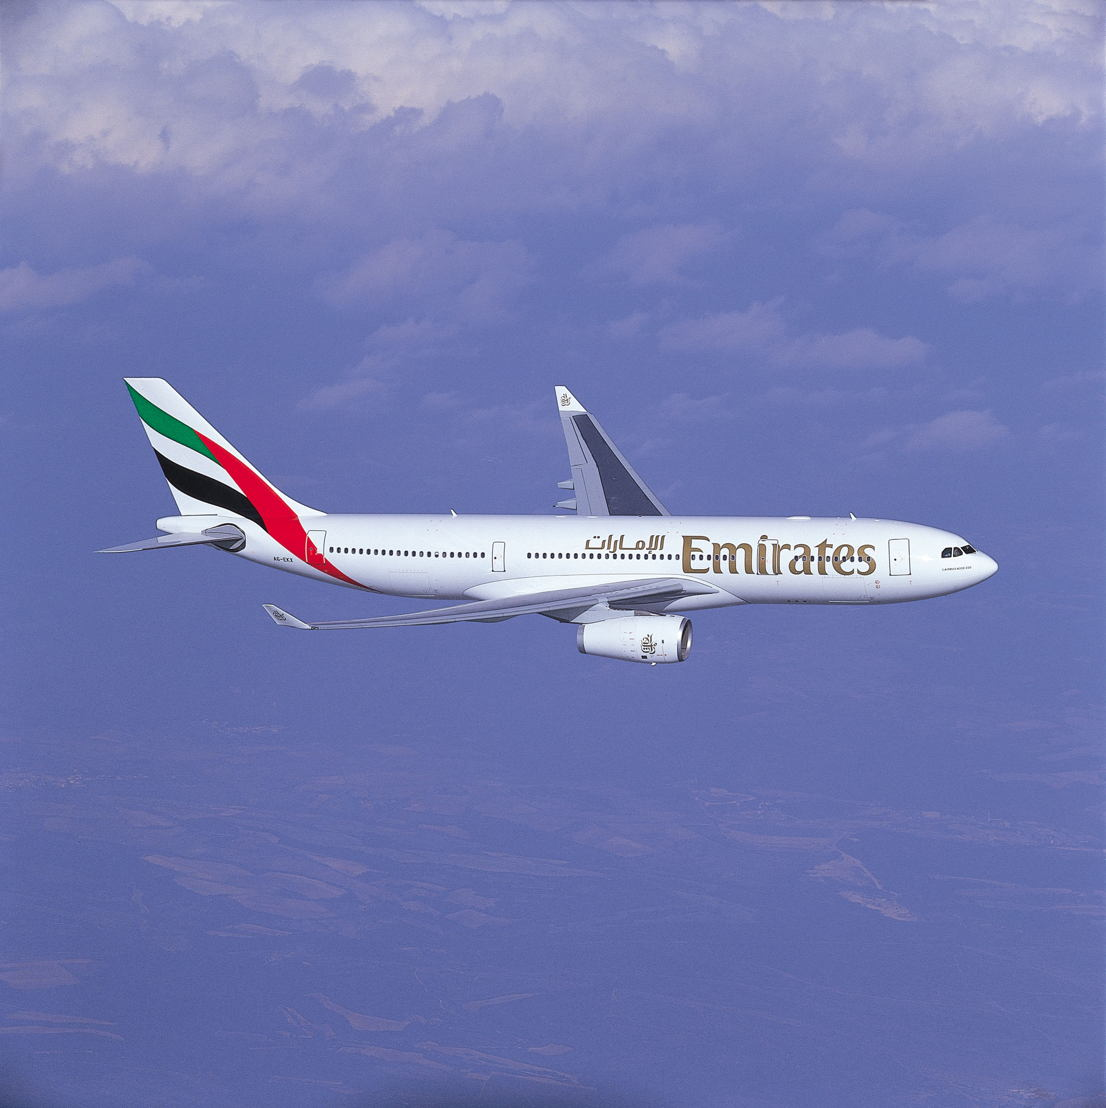 Services will be operated by a combination of a three class and two class configured A330-200.